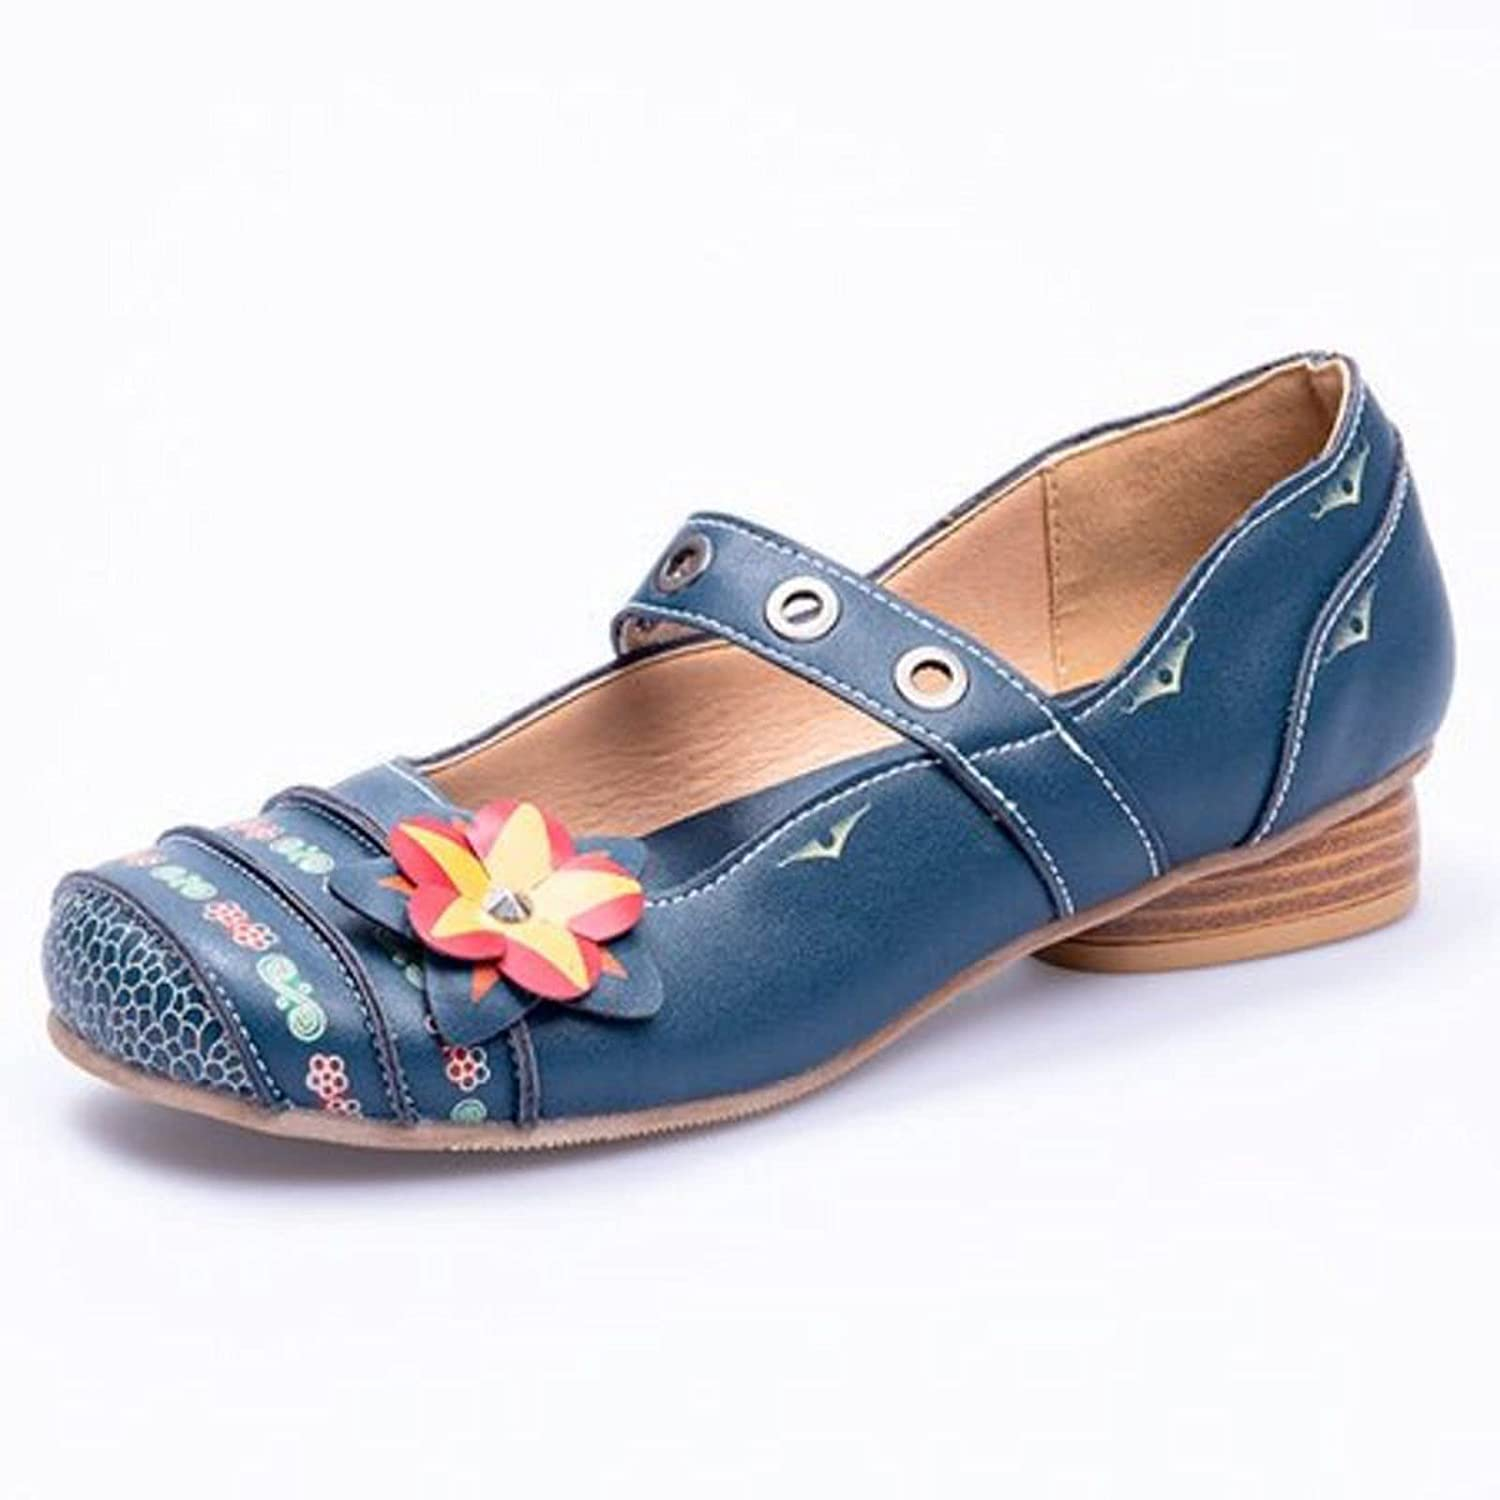 Olymmont Bohemian Ethnic Flat Shoes with Casu Max 85% OFF Women for Heel Low Ranking TOP8